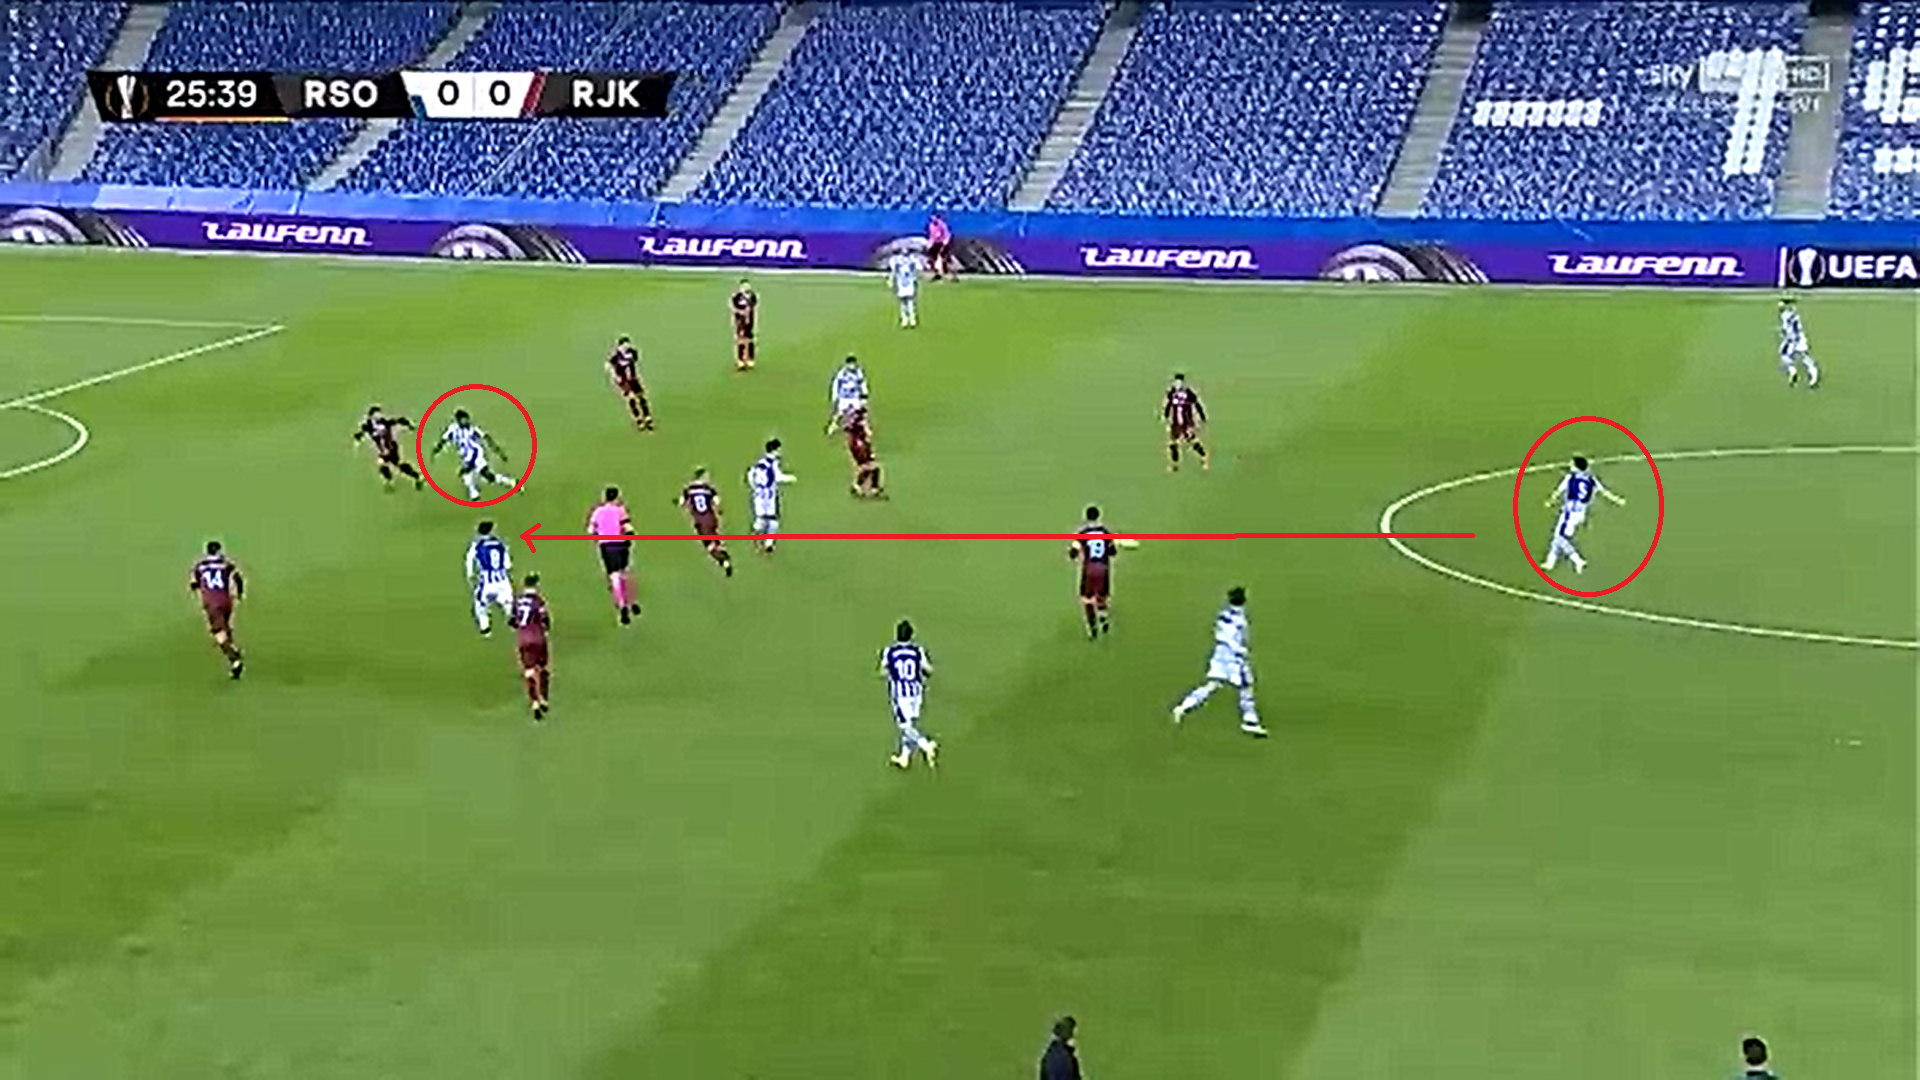 Igor Zubeldia at Real Sociedad 2020/21 - scout report tactical analysis tactics